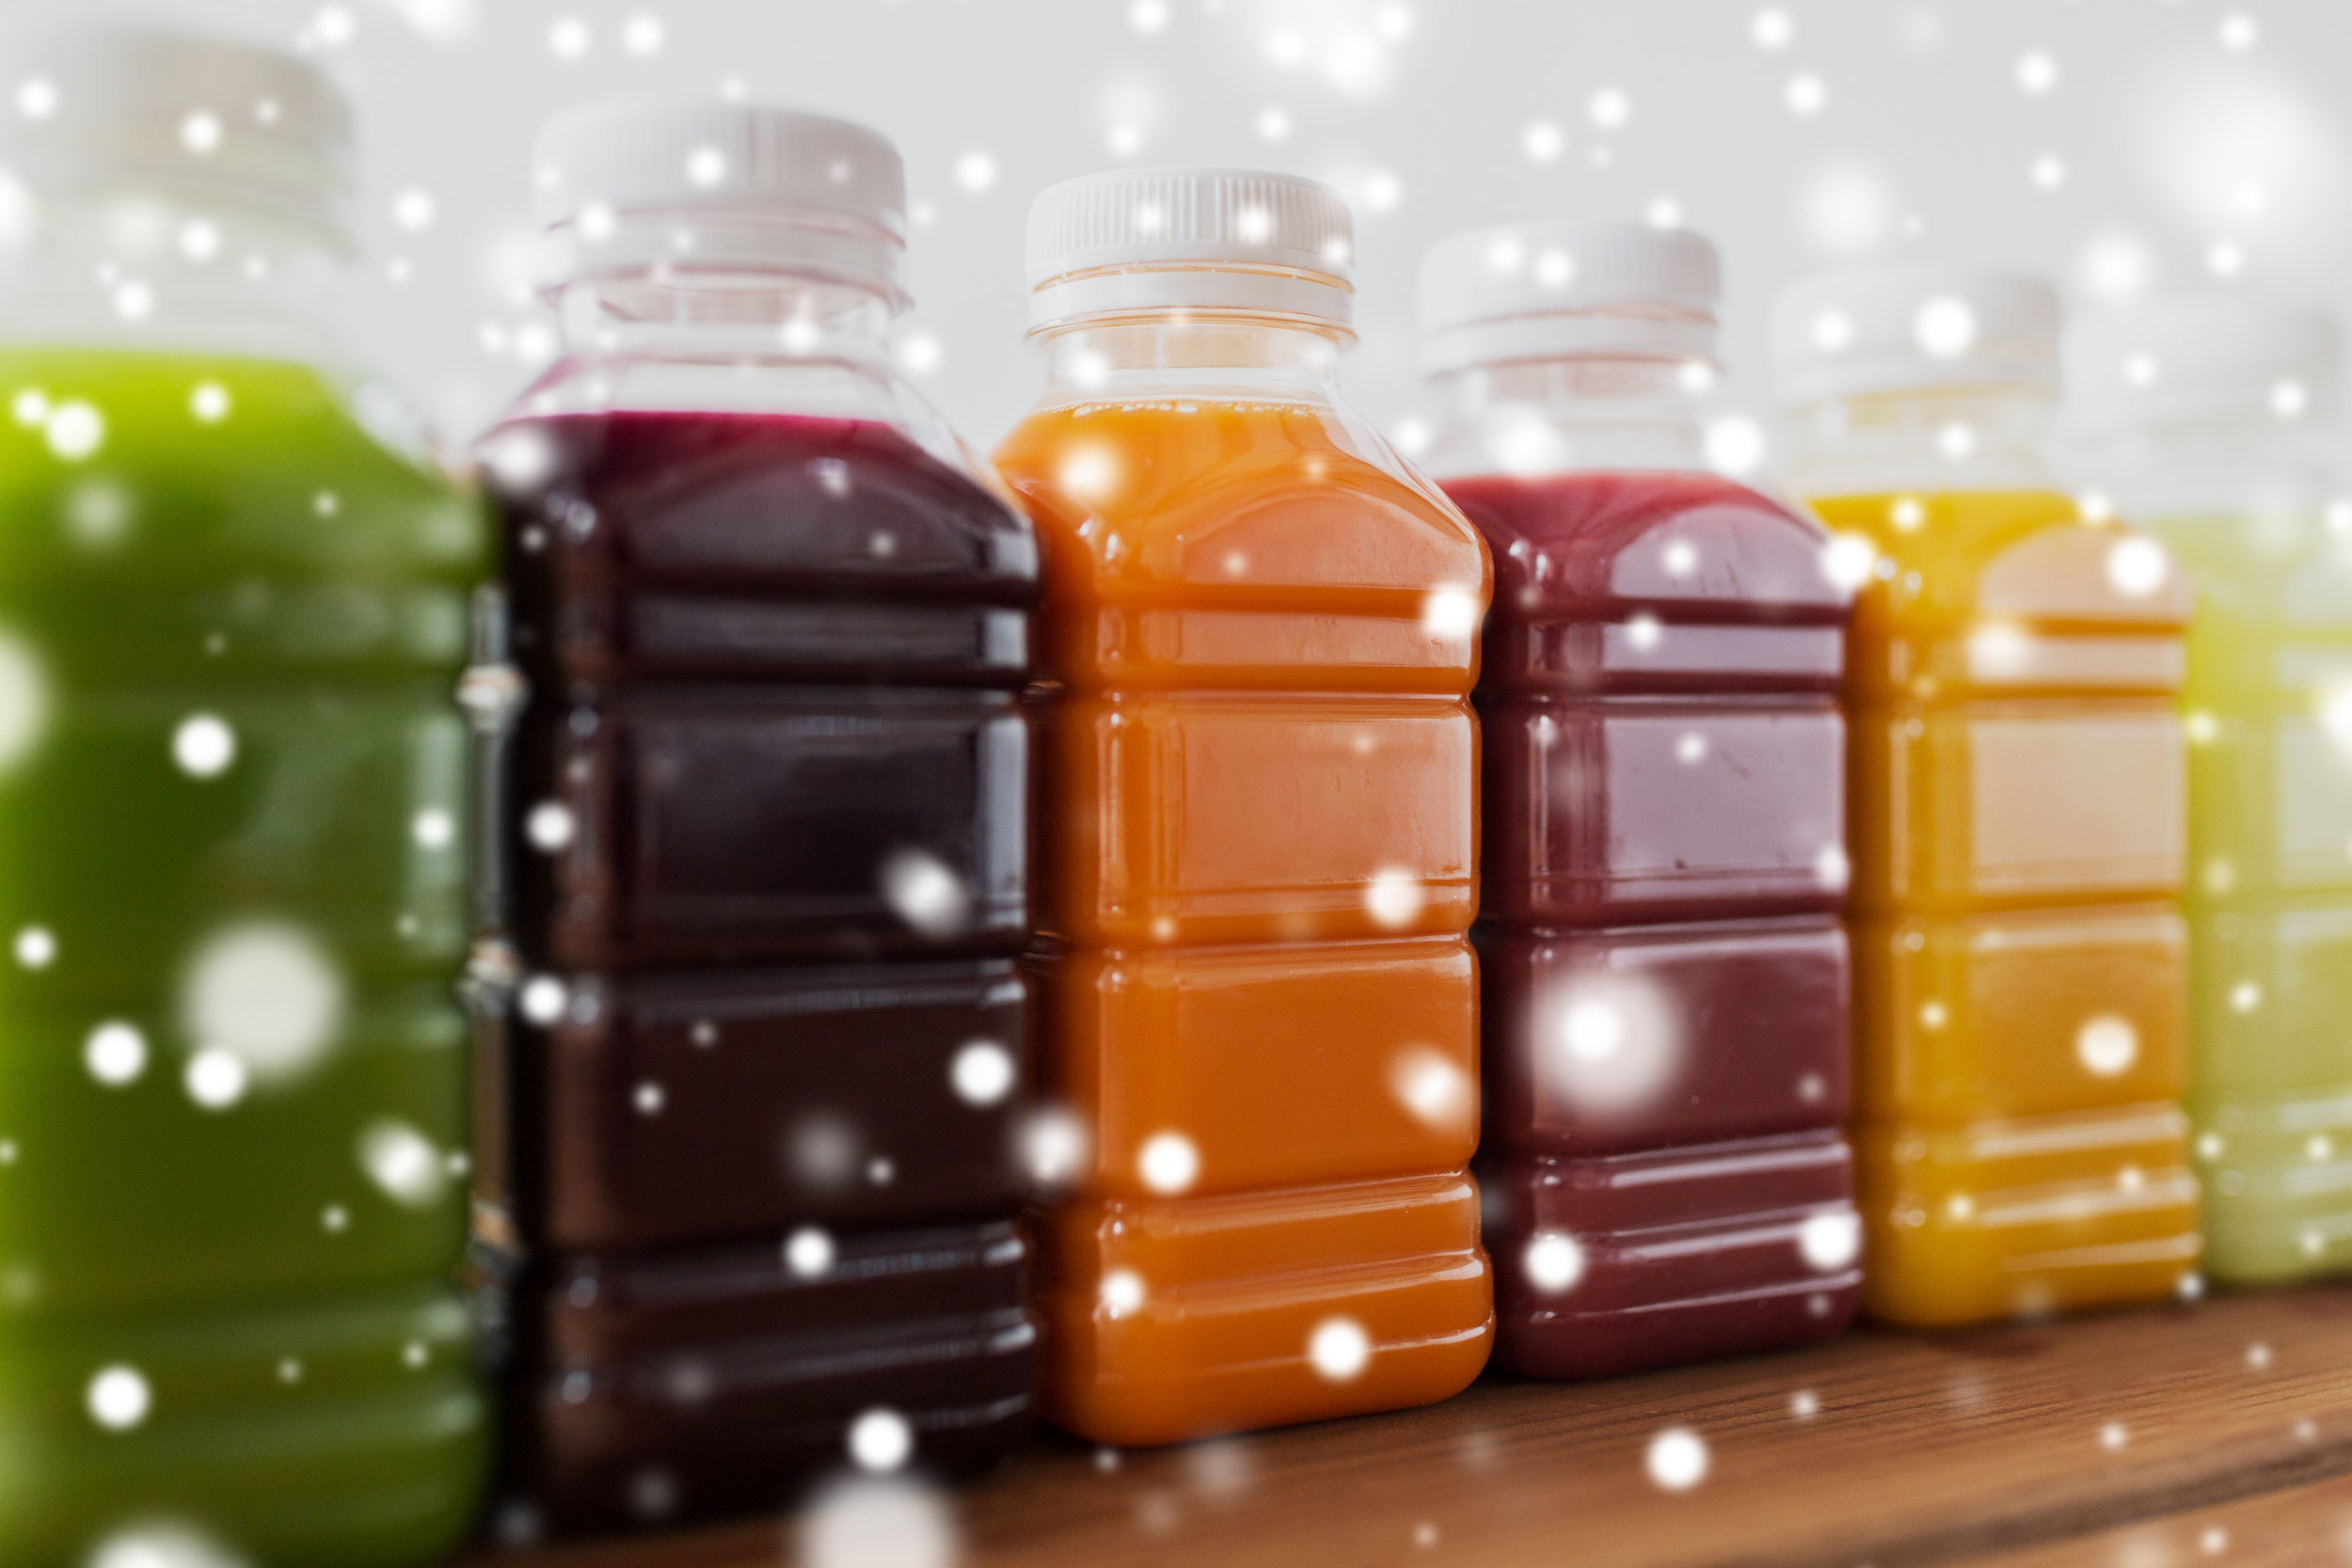 bottles-with-different-fruit-or-vegetable-juices-PY4XABX.jpg